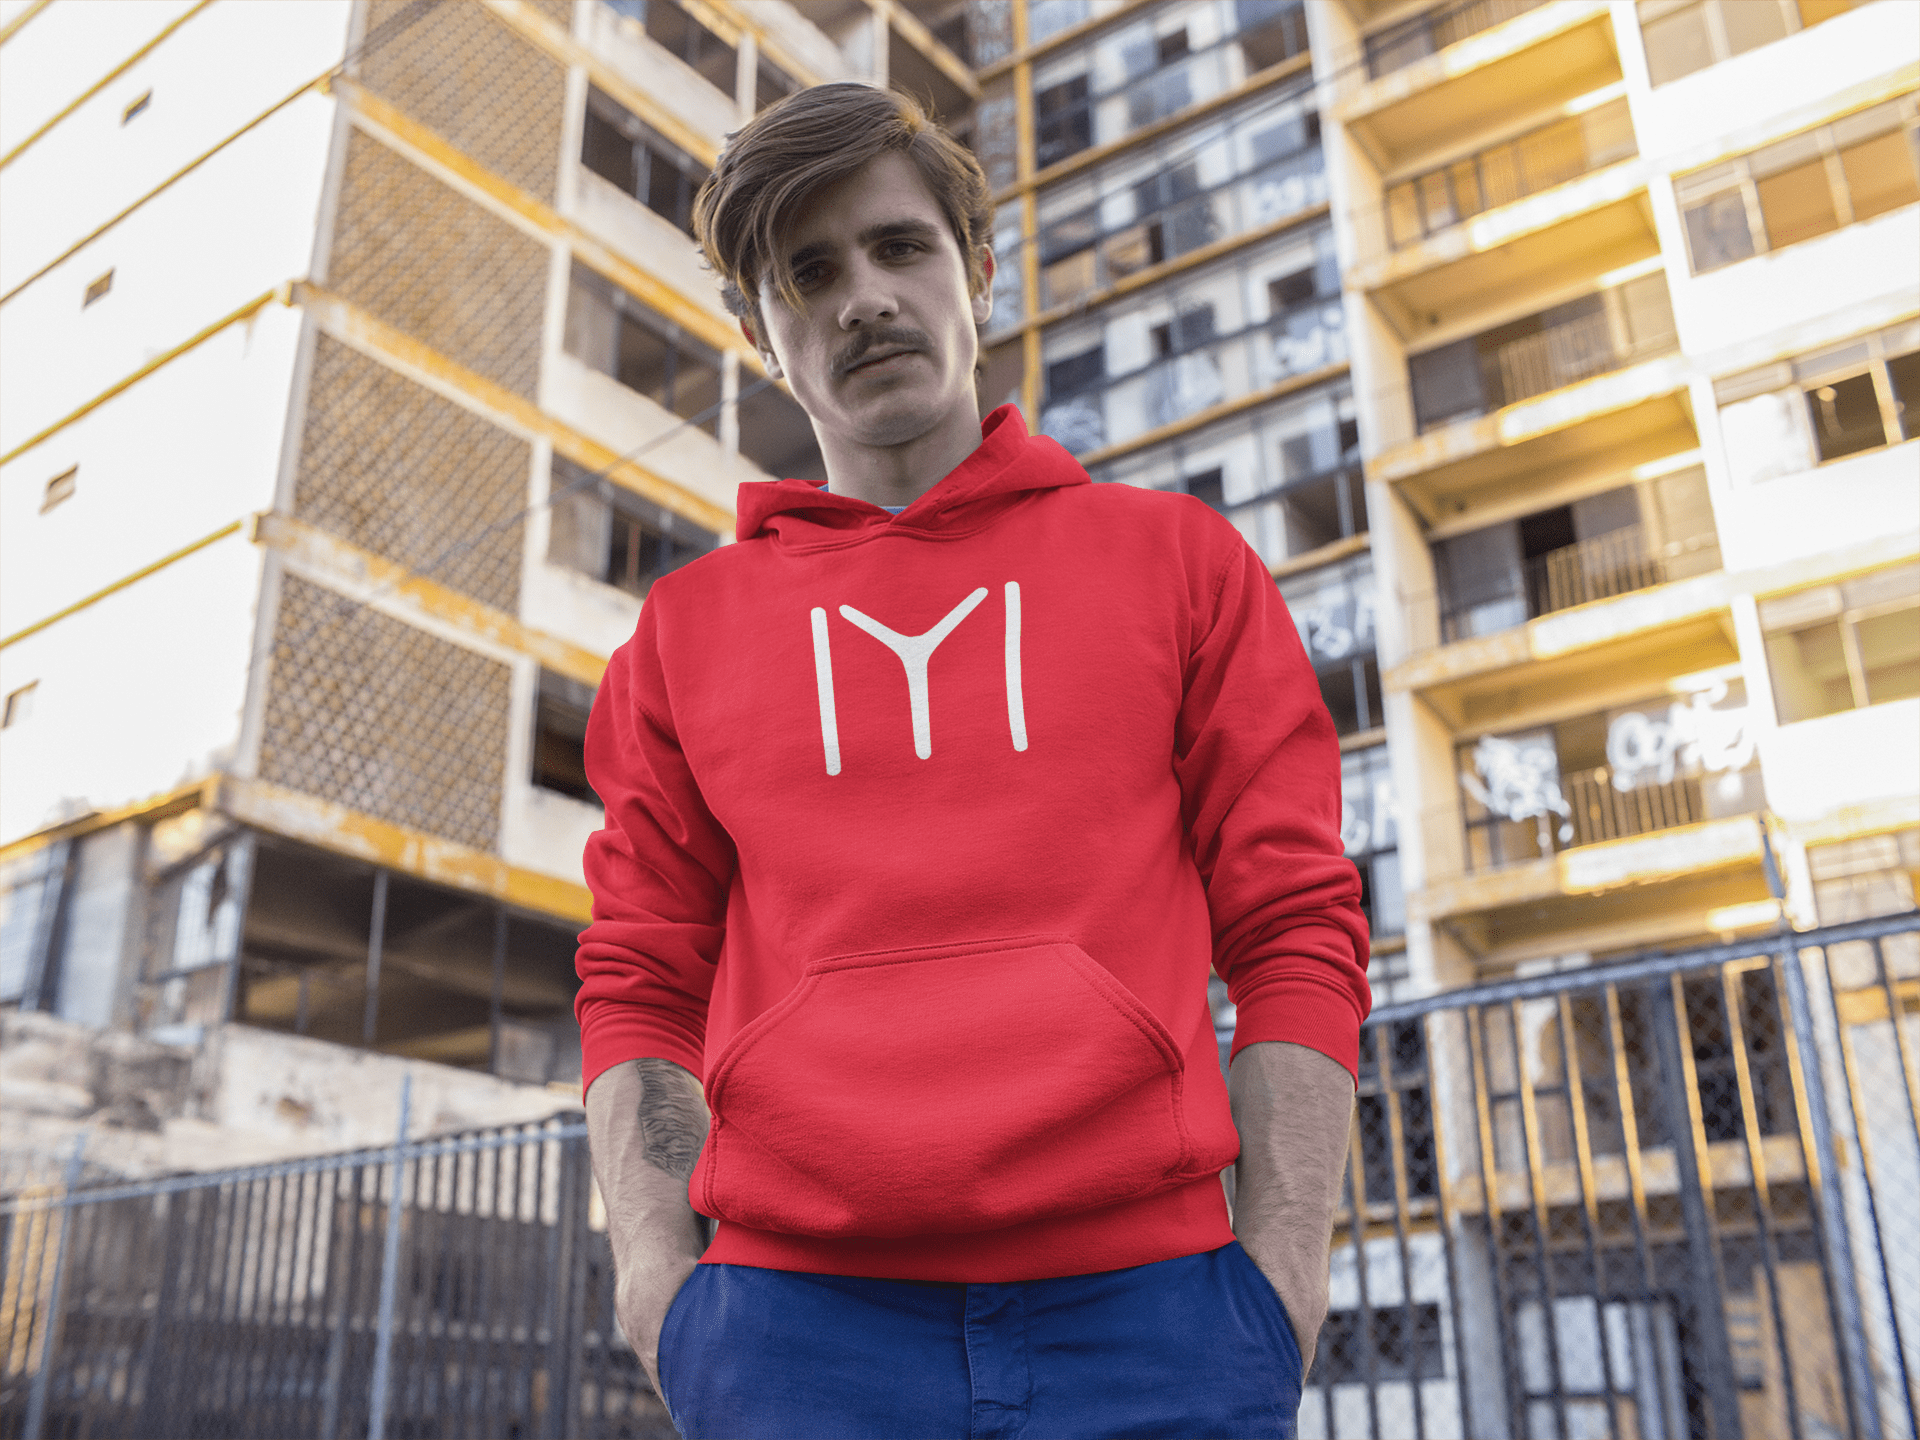 young-fella-wearing-a-pullover-hoodie-while-hanging-out-at-the-city-mockup-a13609